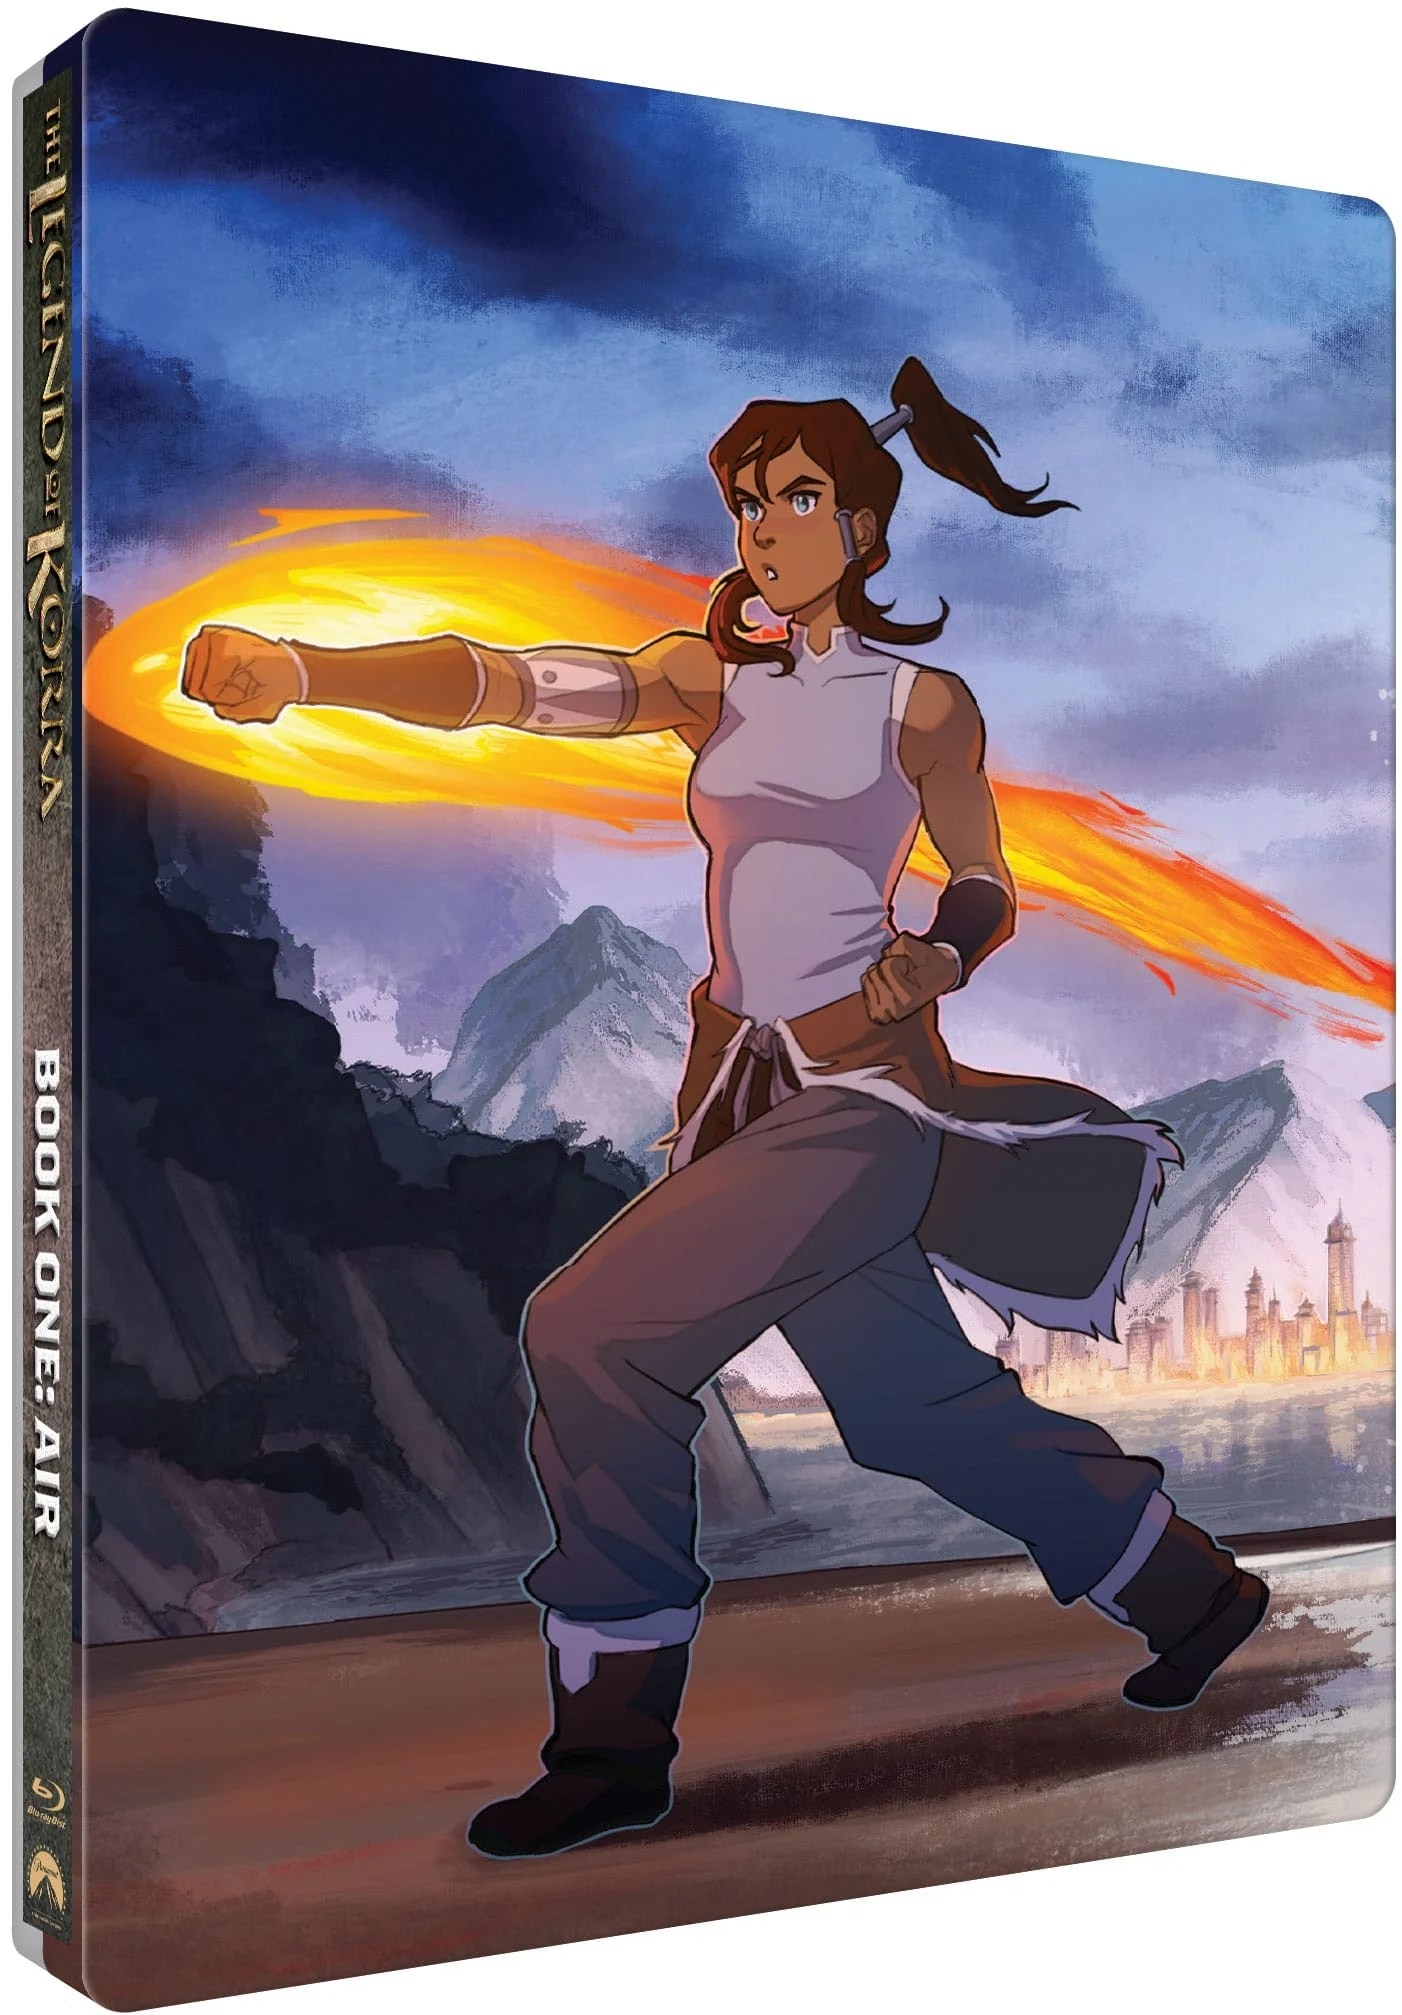 The Legend of Kora Limited Edition Steelbook Collection Book 1 Cover. Nickelodeon'scritically acclaimed, Emmy® Award-winningThe Legend of Korraanimated series receives the SteelBook® treatment. The Legend of Korra - The Complete Series Limited Edition Steelbook Collection, a 4-book collection features stunning new artwork by artist Caleb Thomas. Each book featuring a different element (Fire, Water,Earth, andAir).